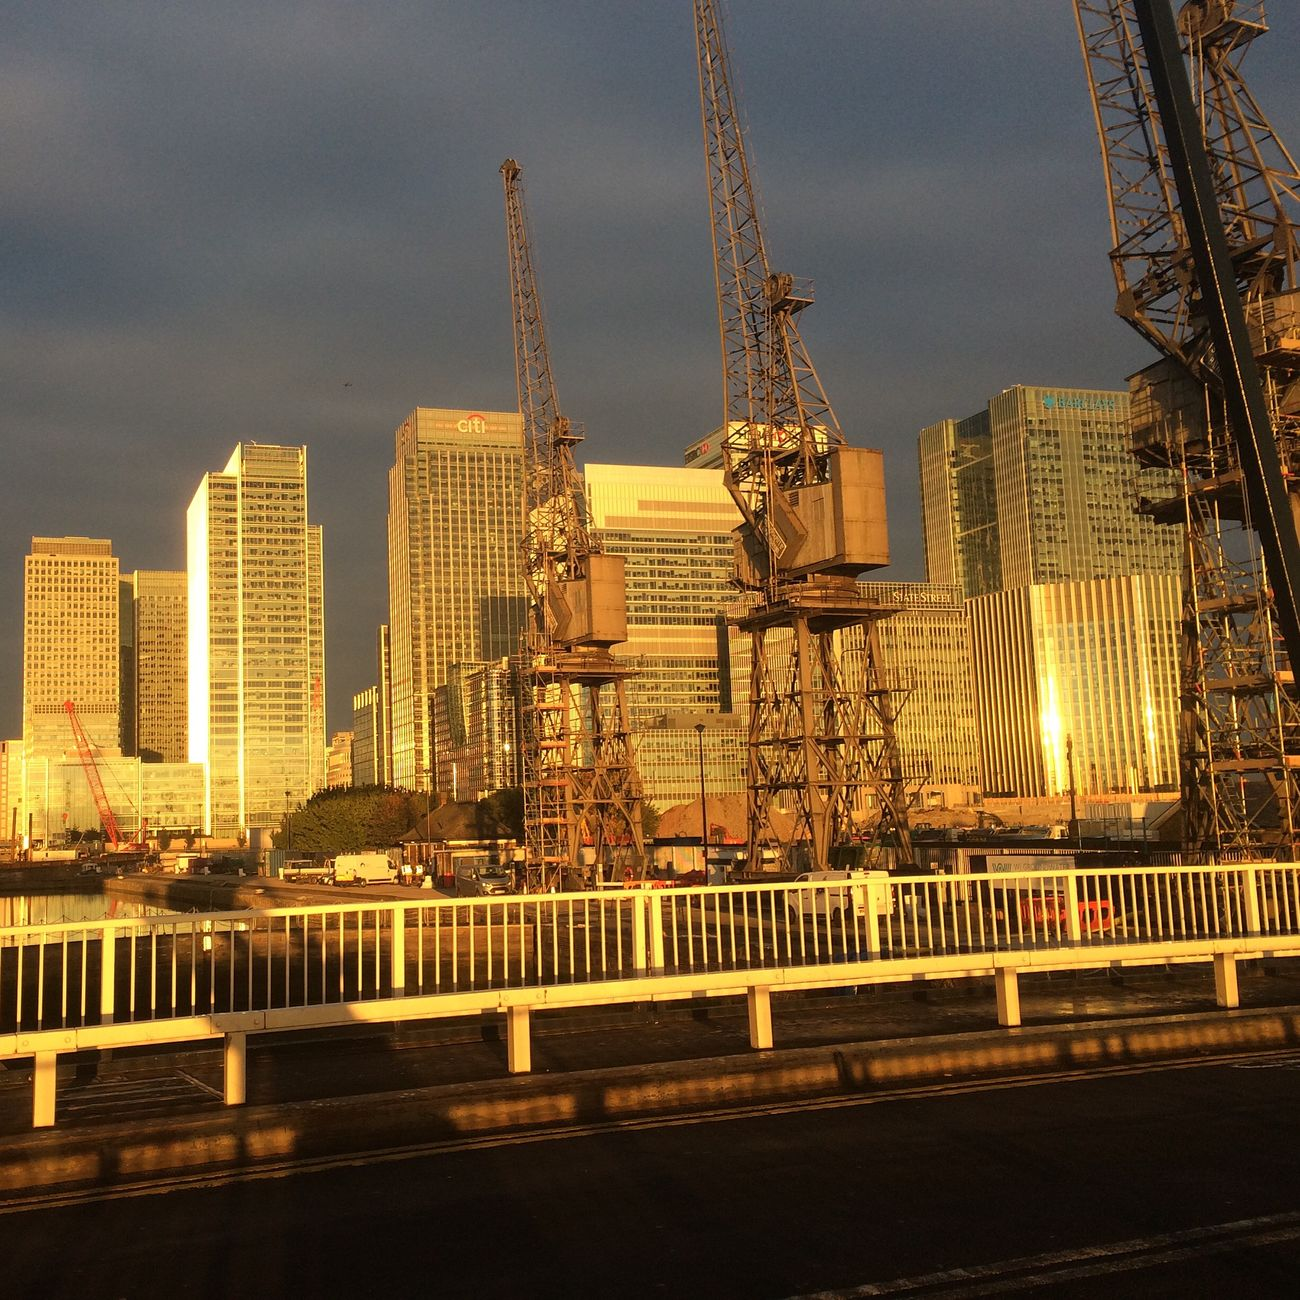 Canarywharf bluebridge Bluebridge Sunrise Morning Golden